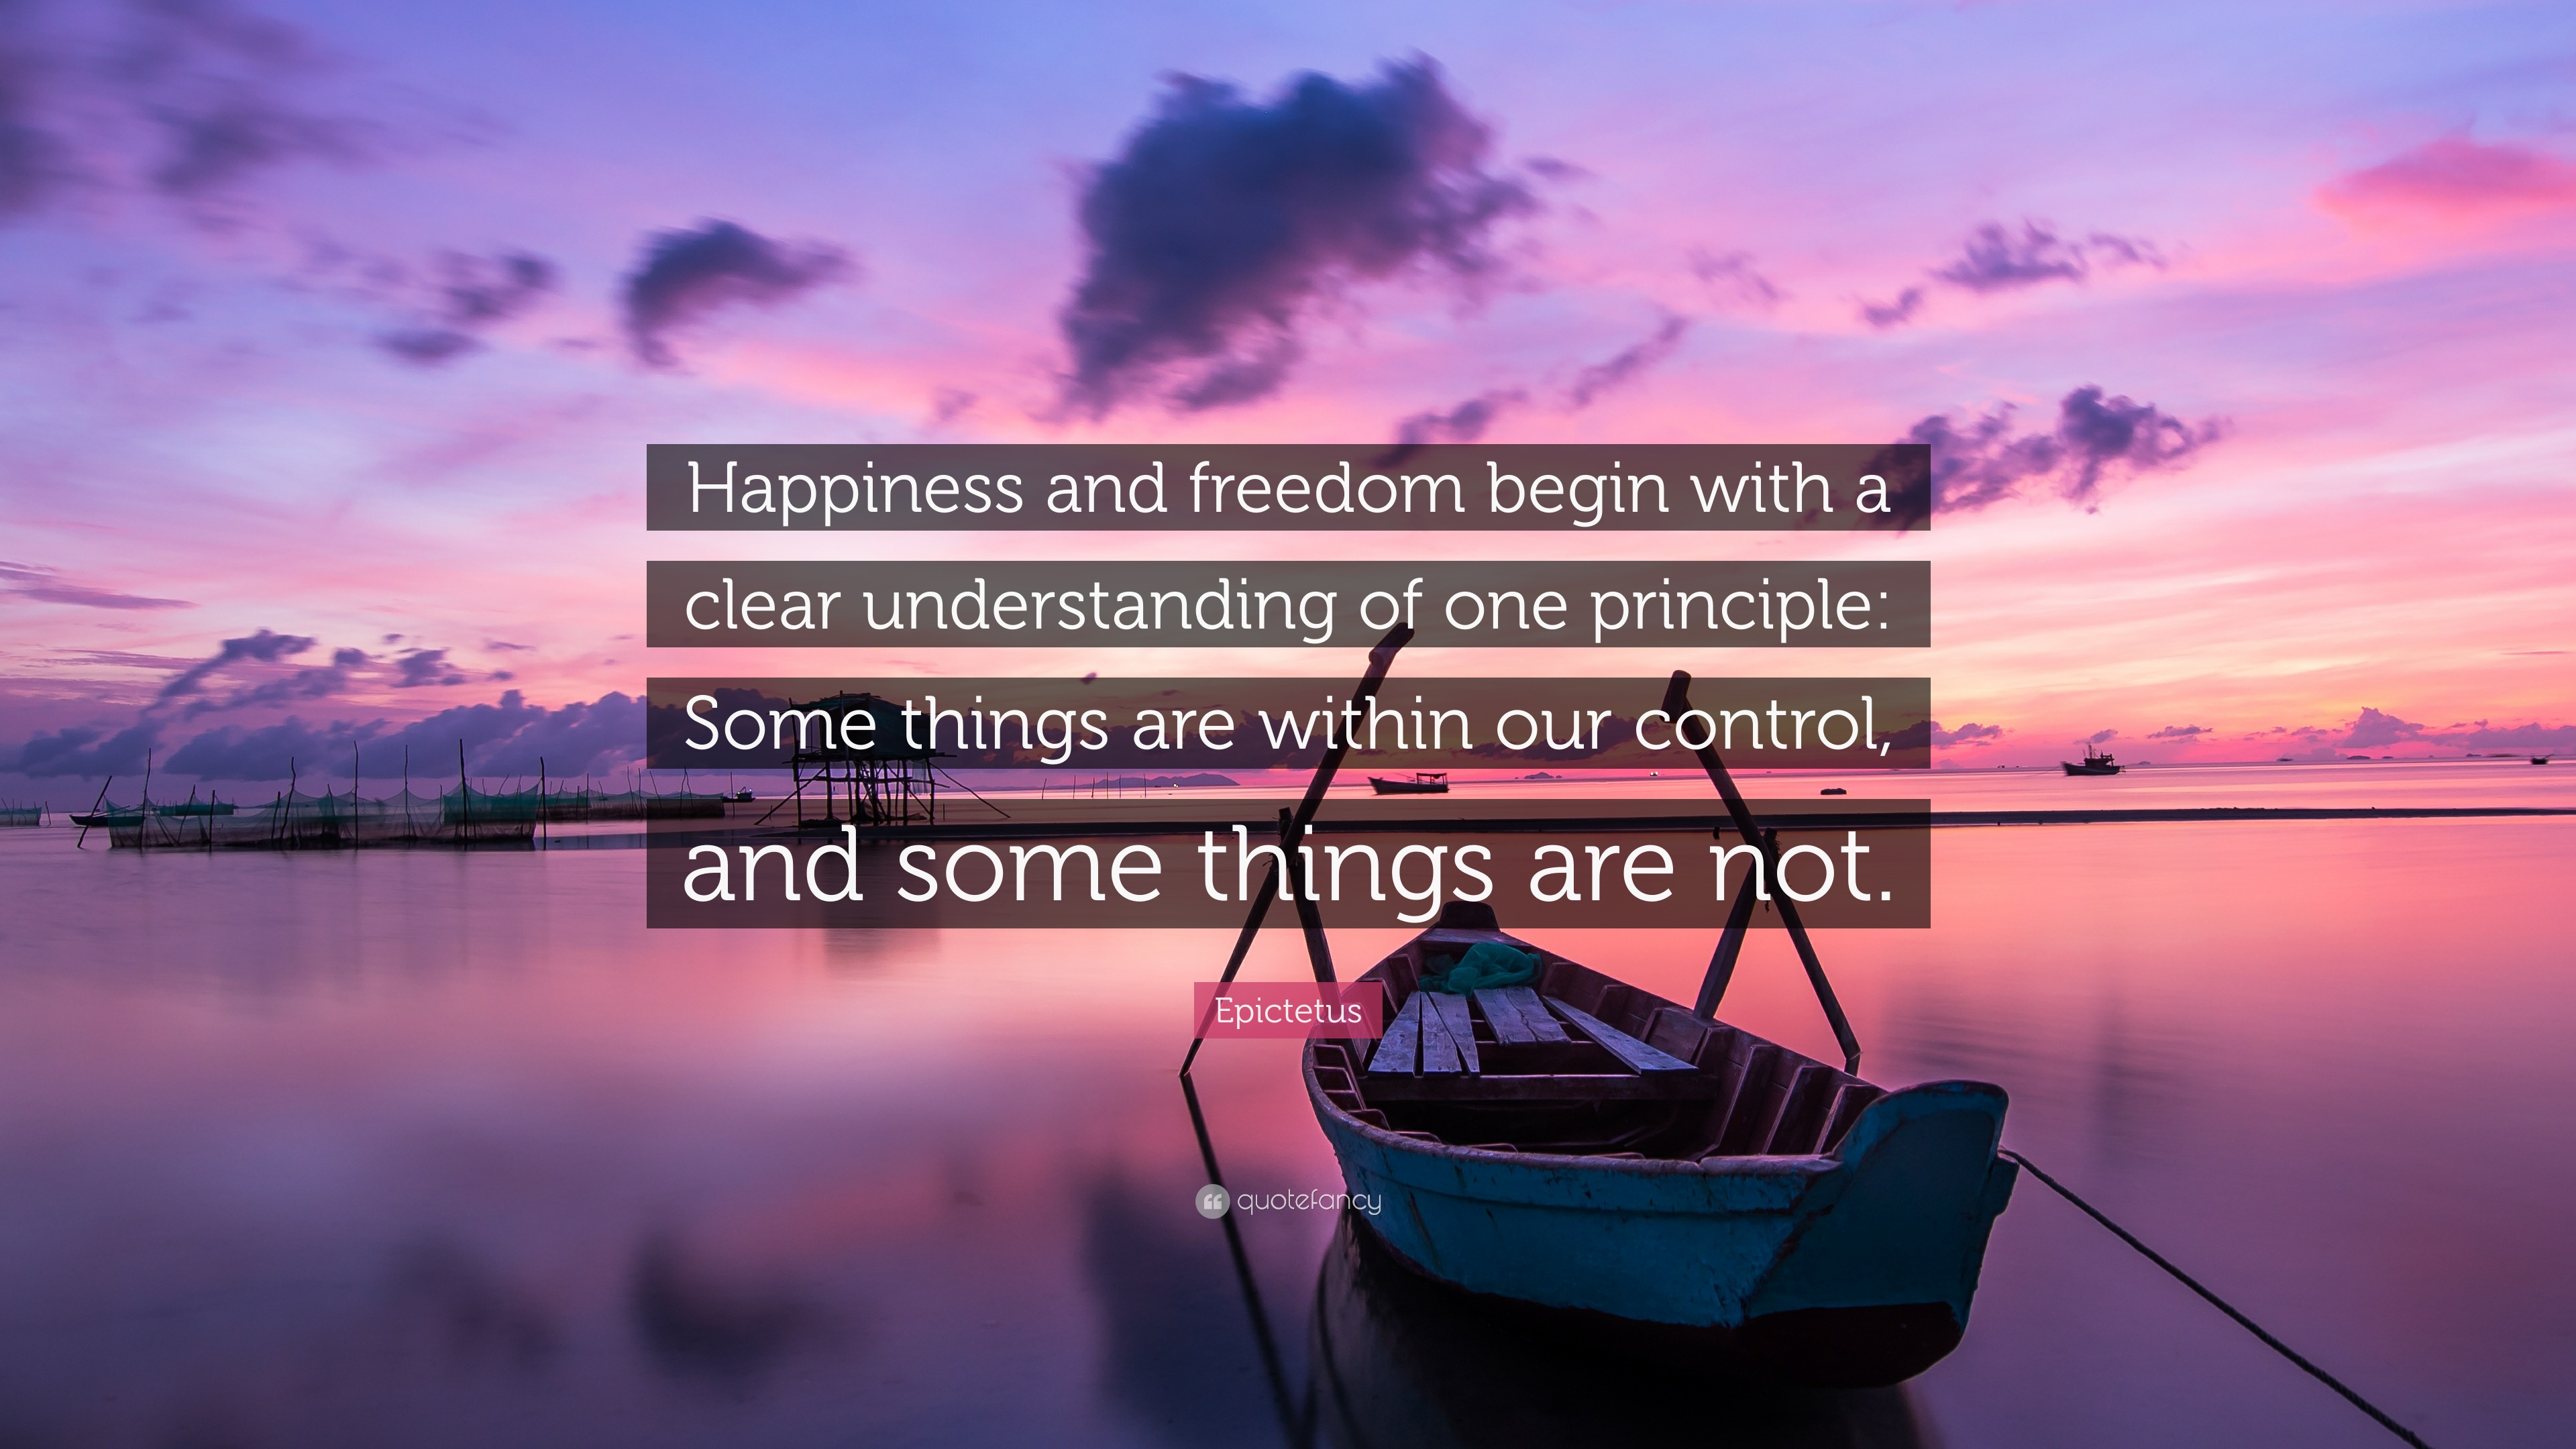 Chanakya Quotes Wallpaper Epictetus Quote Happiness And Freedom Begin With A Clear